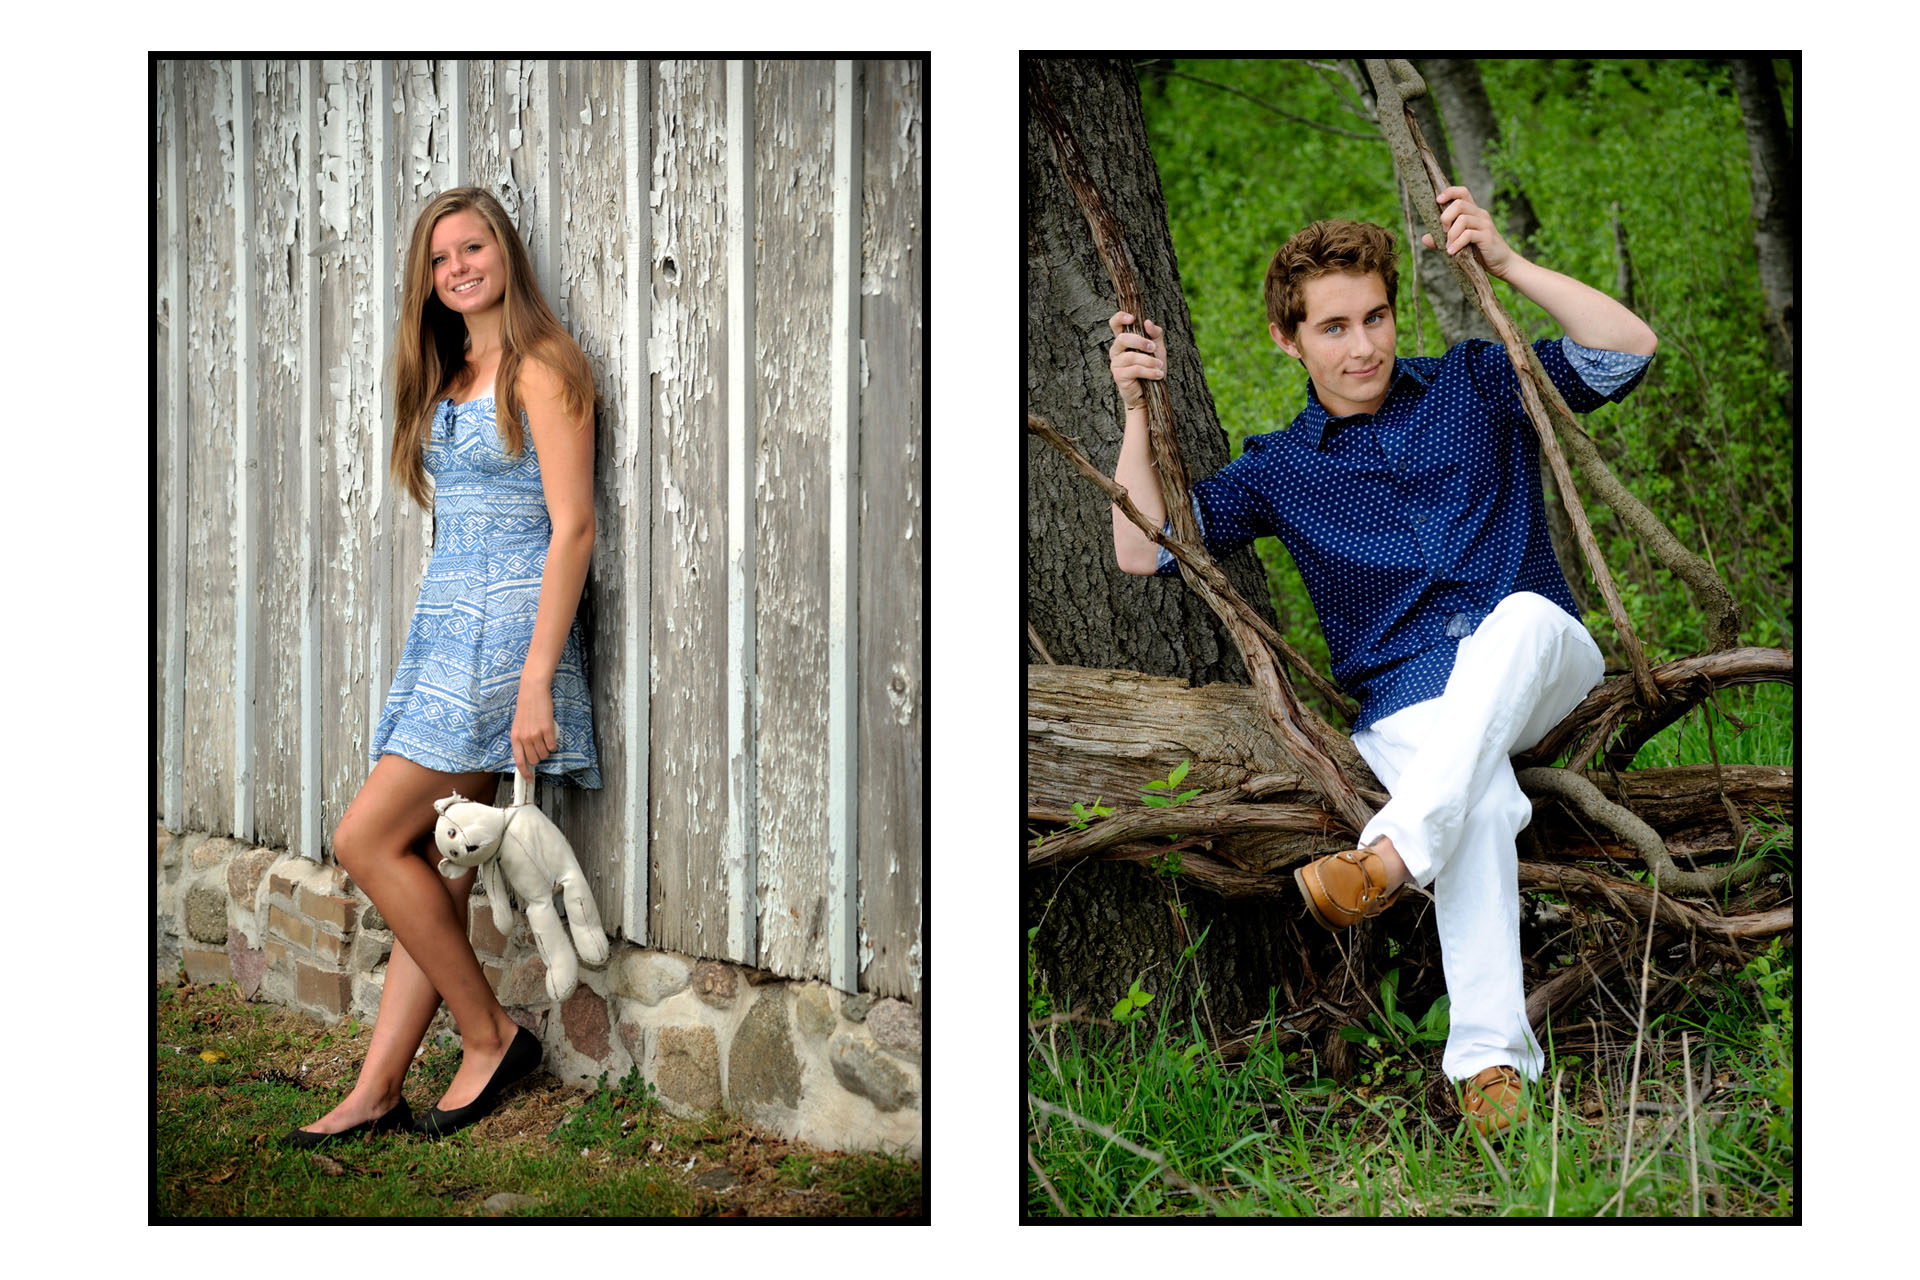 Troy, Michigan seniors photos of high school seniors posing with nearby natural props used on this rural looking location for their senior pictures in Troy, Michigan.